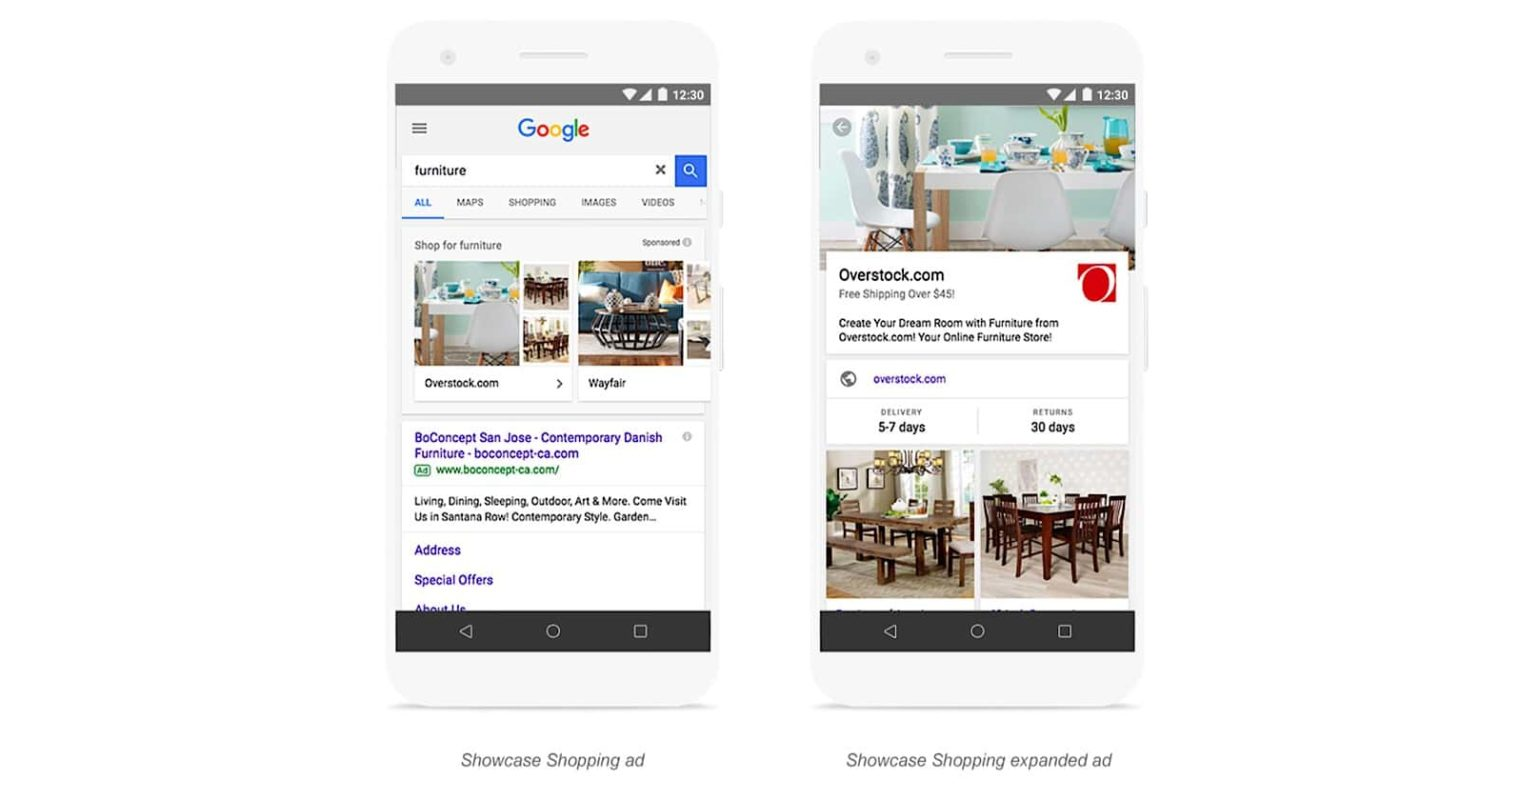 Google AdWords' Showcase Shopping Ads Can Display Collections of Products